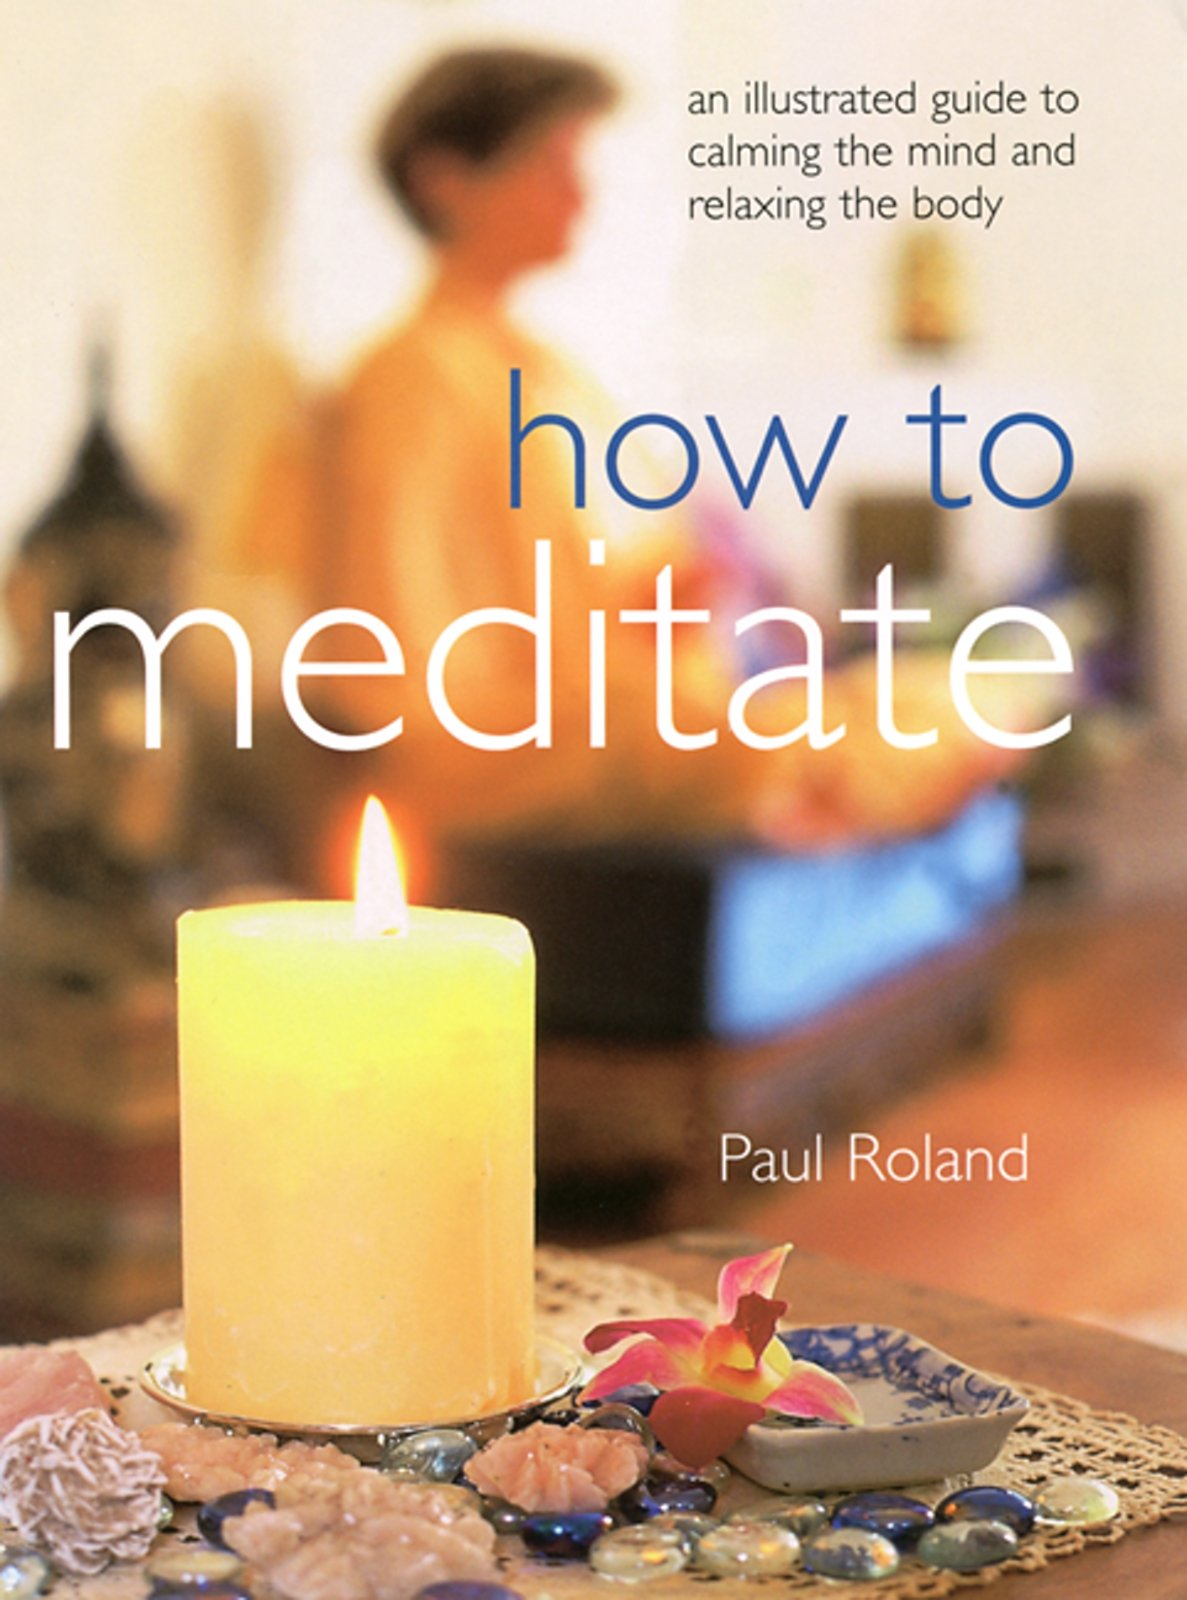 Download How to Meditate: An Illustrated Guide to Calming the Mind and Relaxing the Body ebook